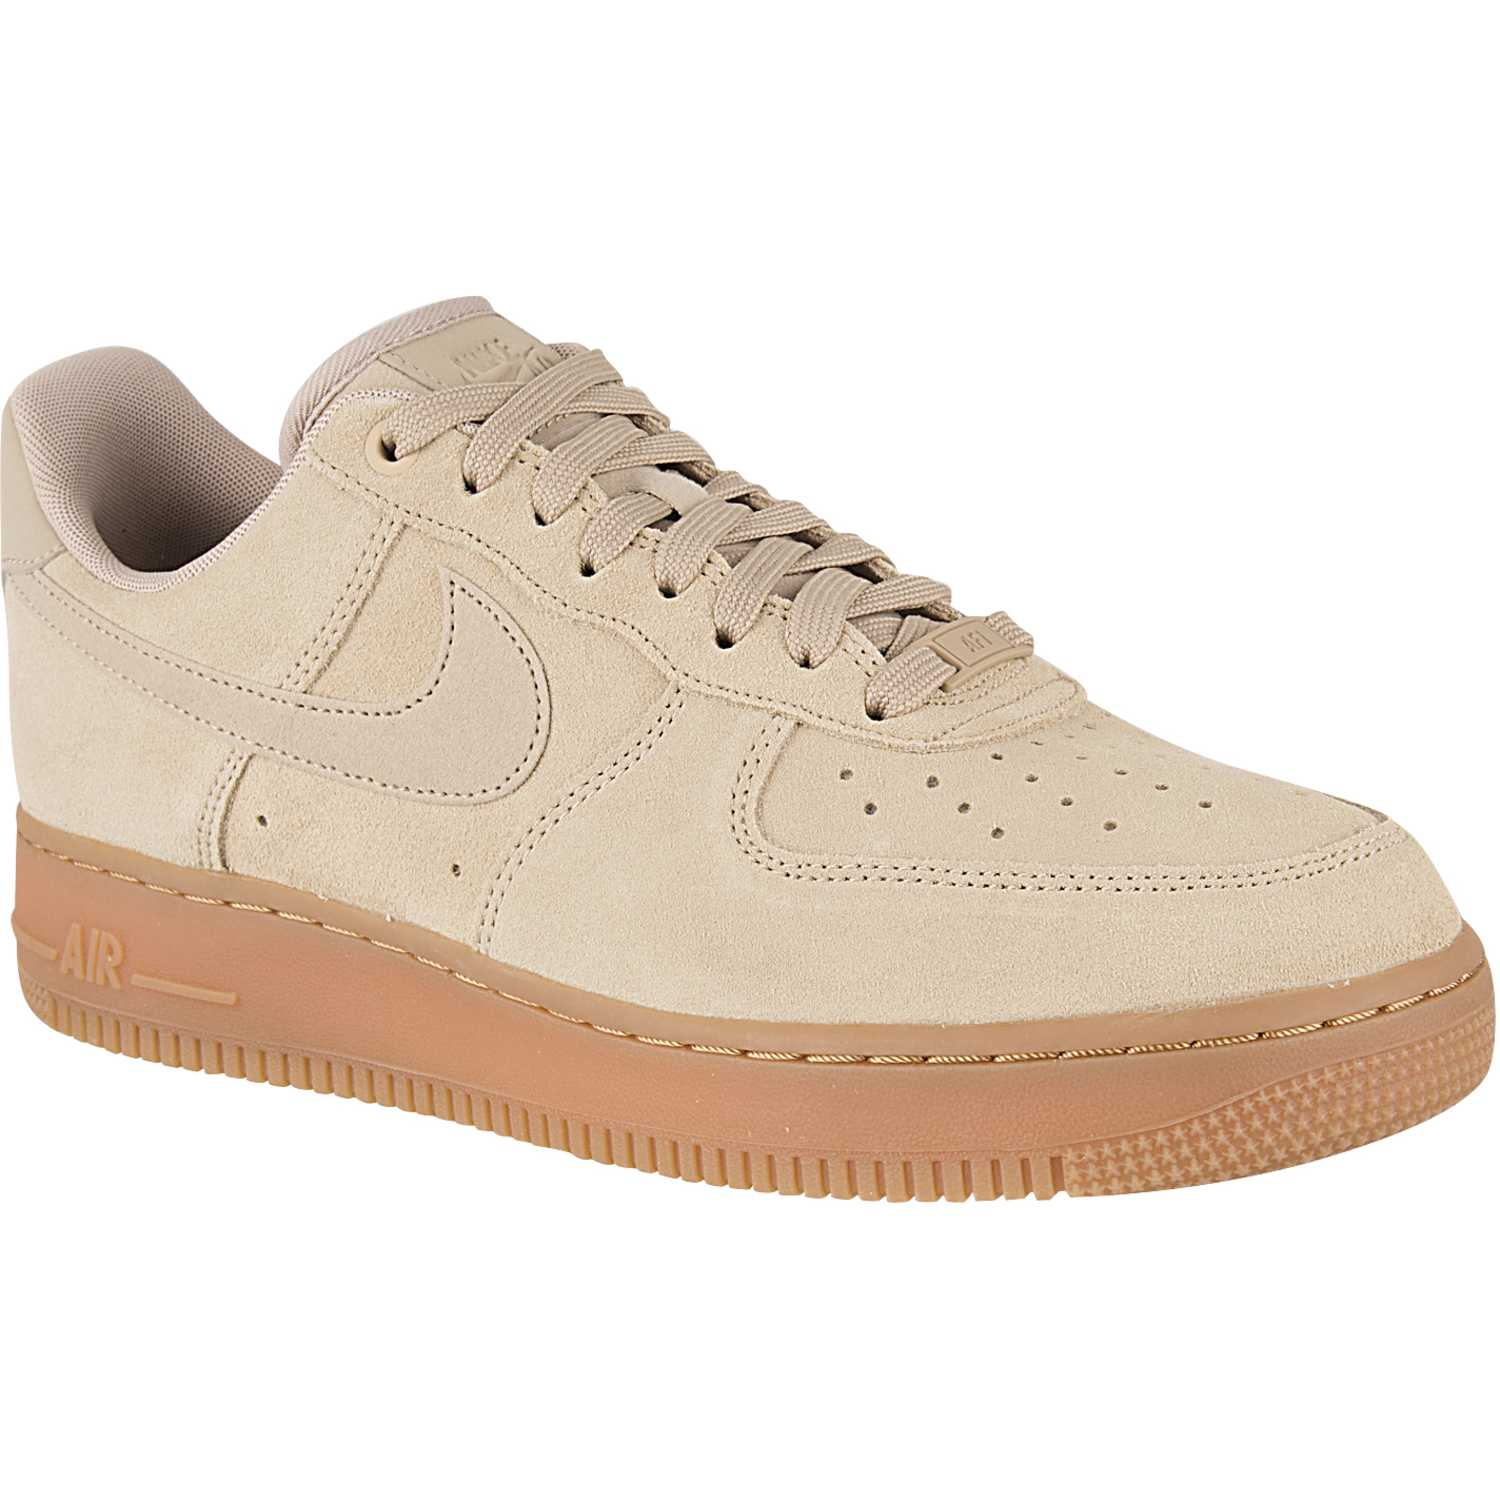 design intemporel 0efa5 92c18 Ballerinas de Mujer Nike camel air force 1 07 lv8 suede ...